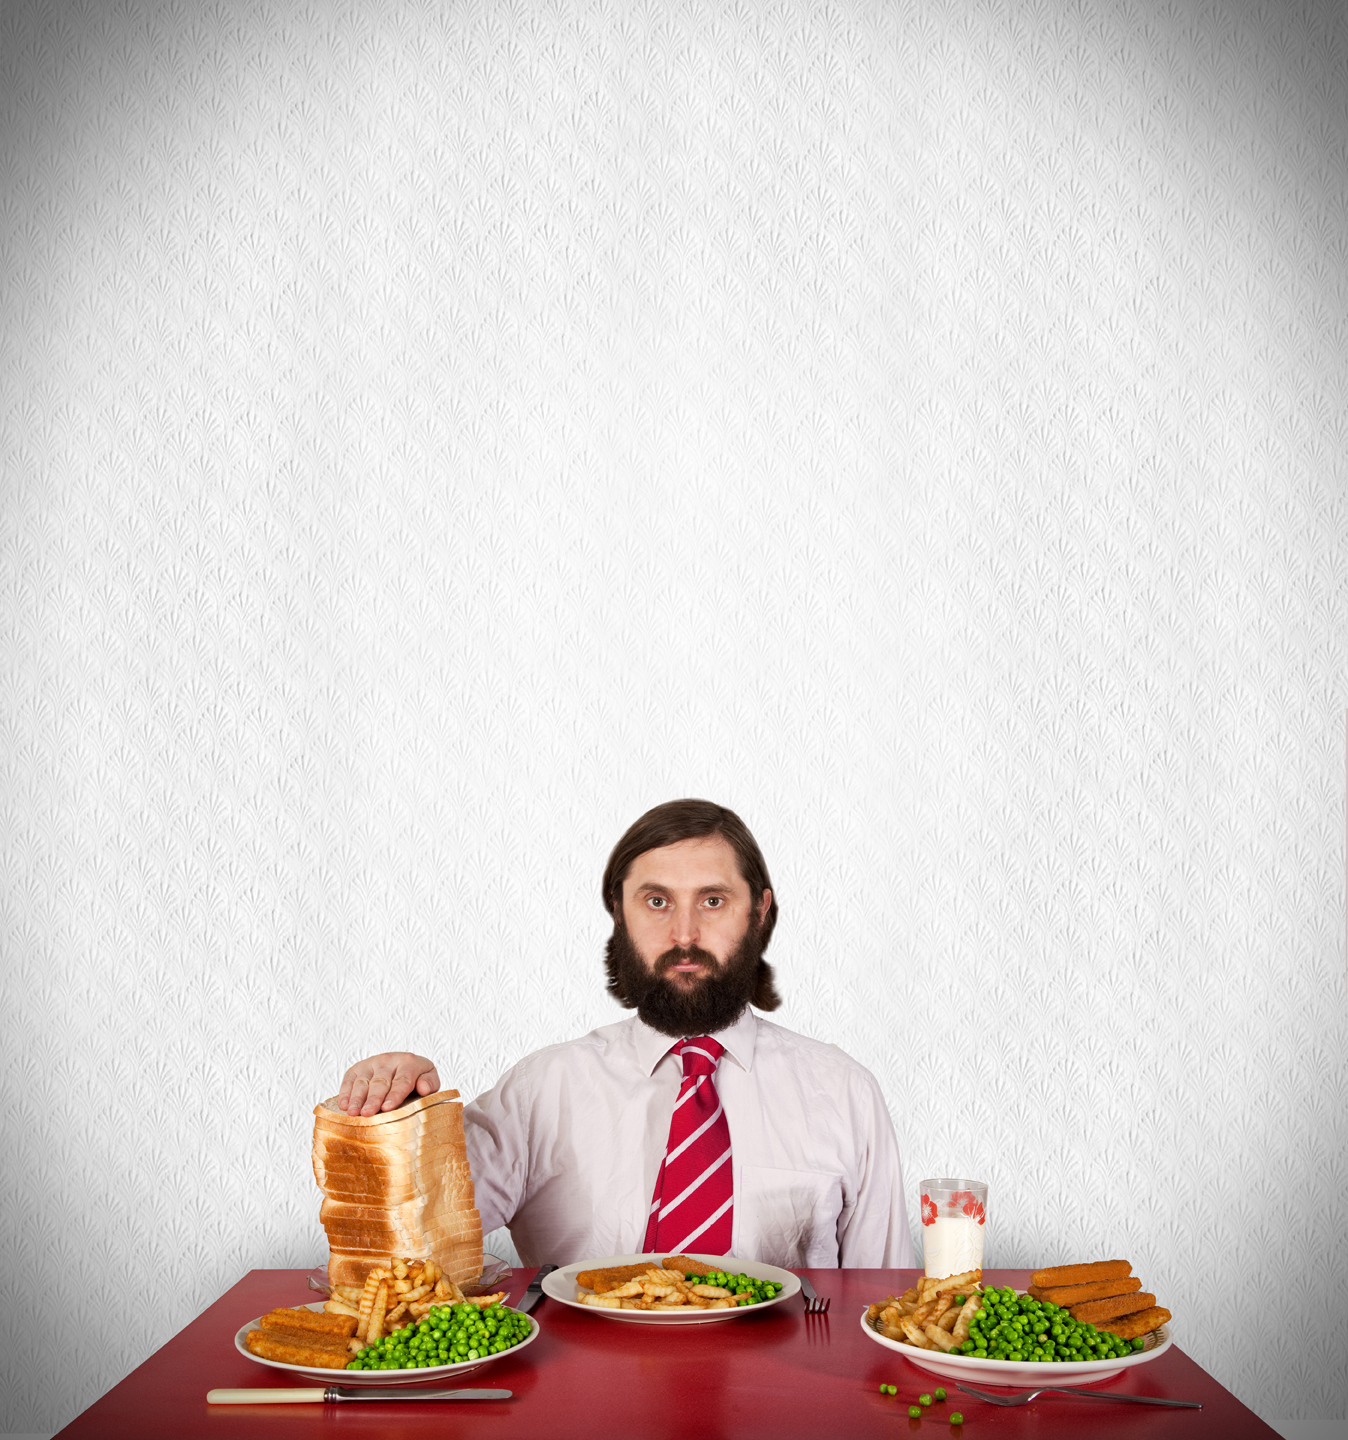 Image of Joe Wilkinson